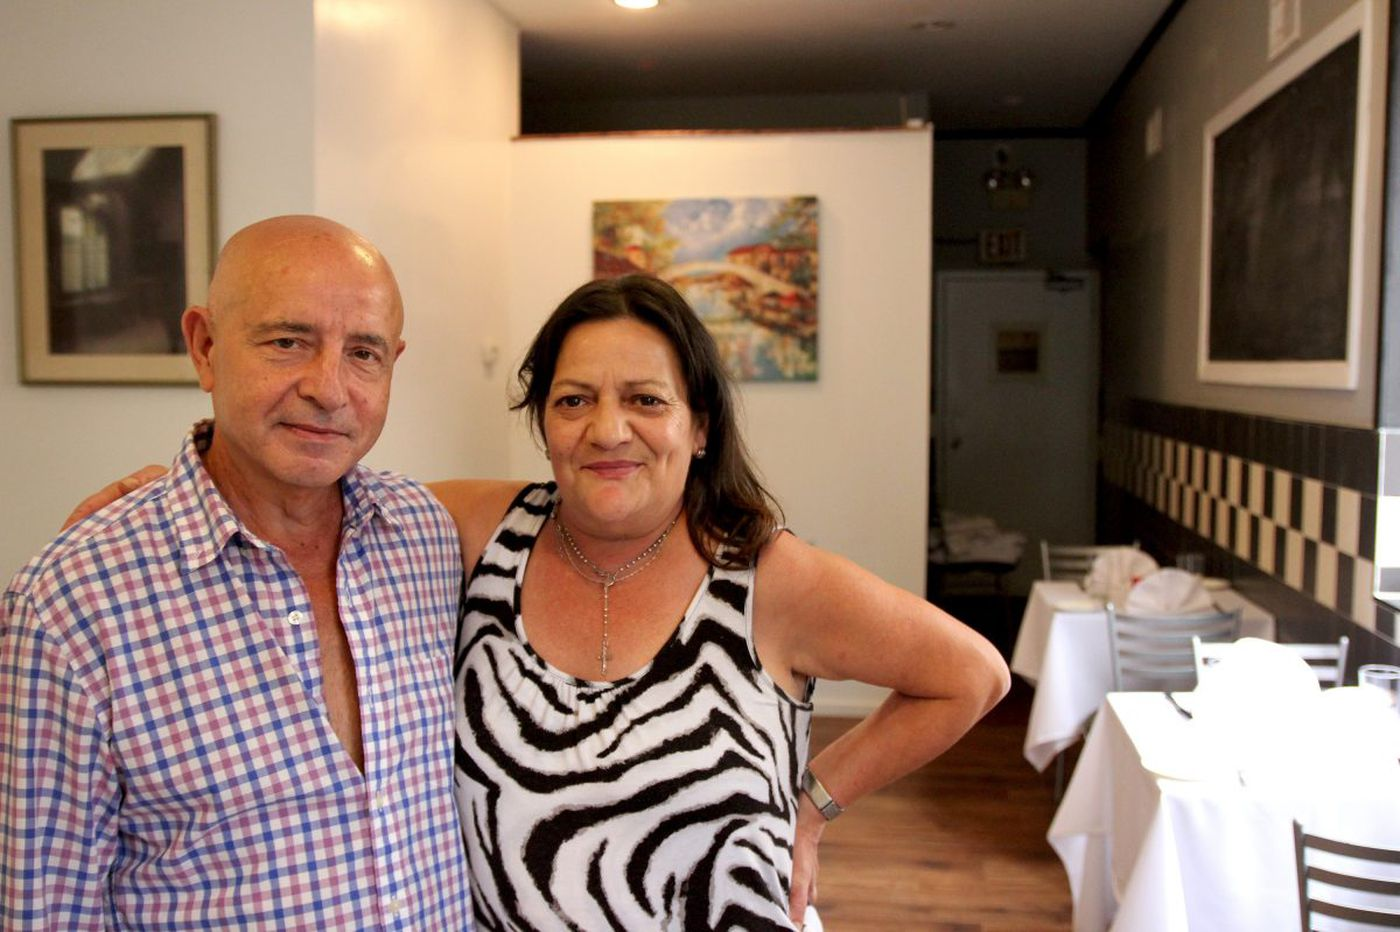 Girasole owners open Angelina's in South Philly